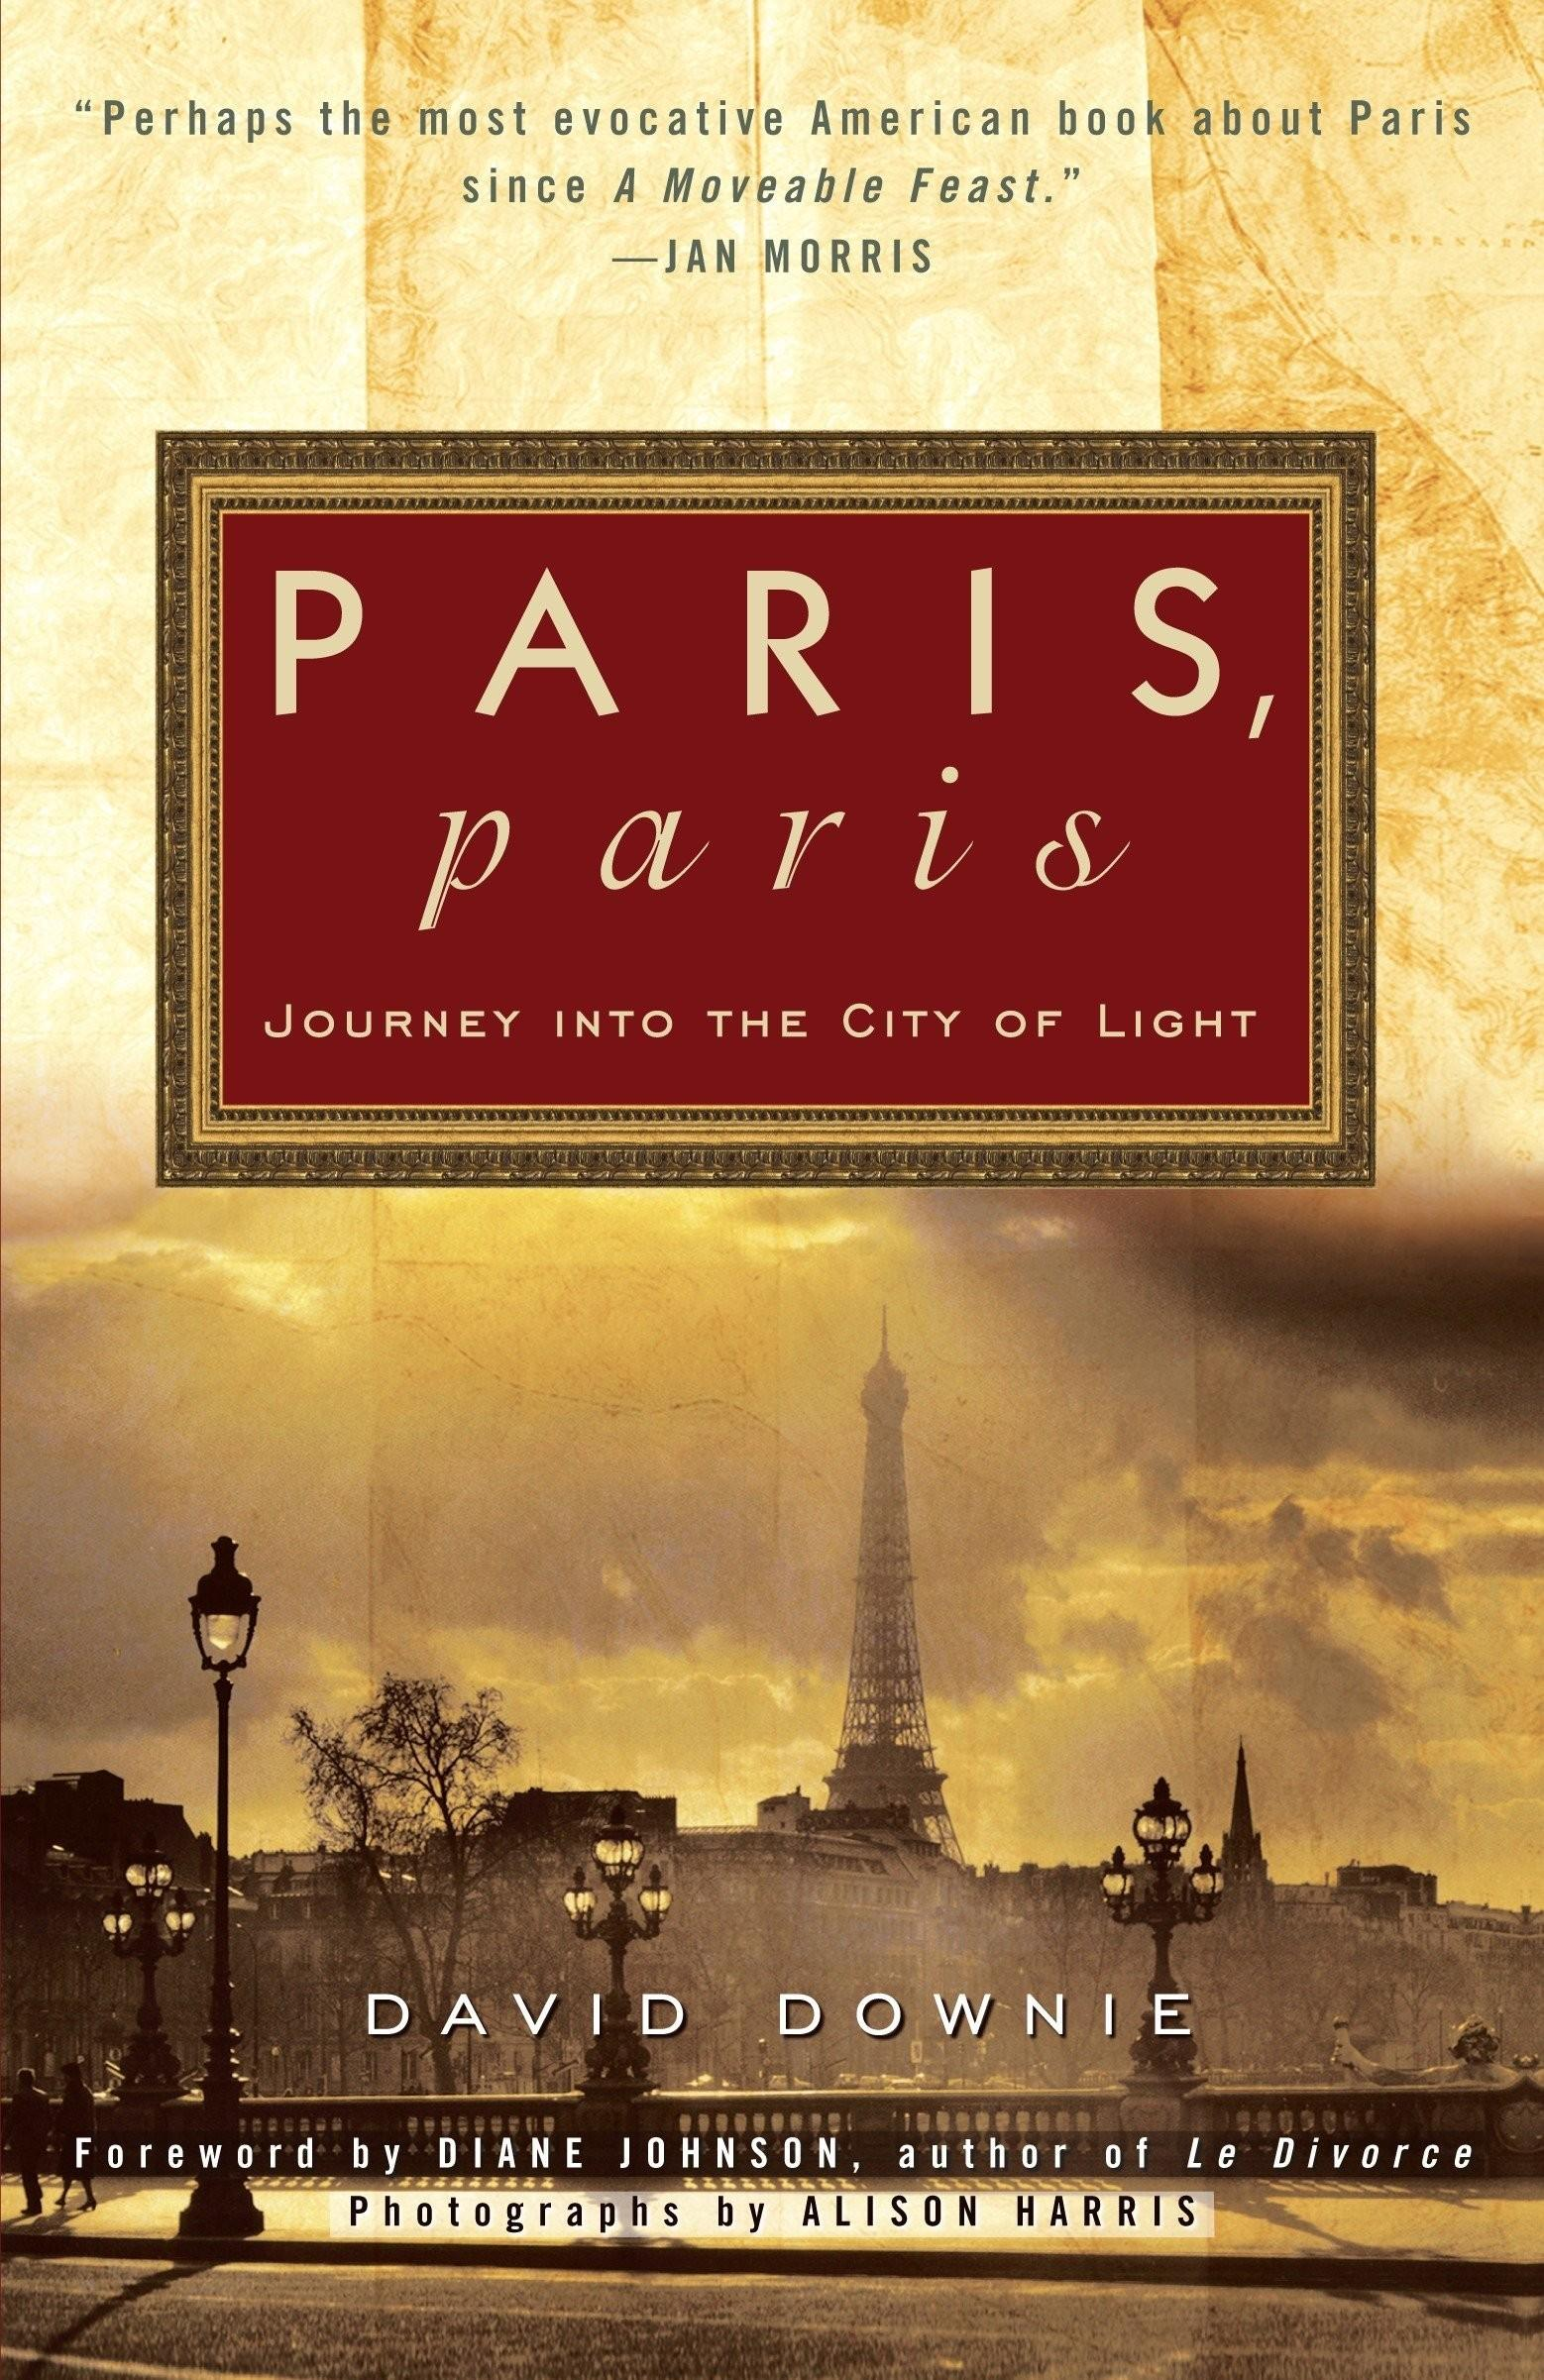 Paris Paris, journey into the city of light